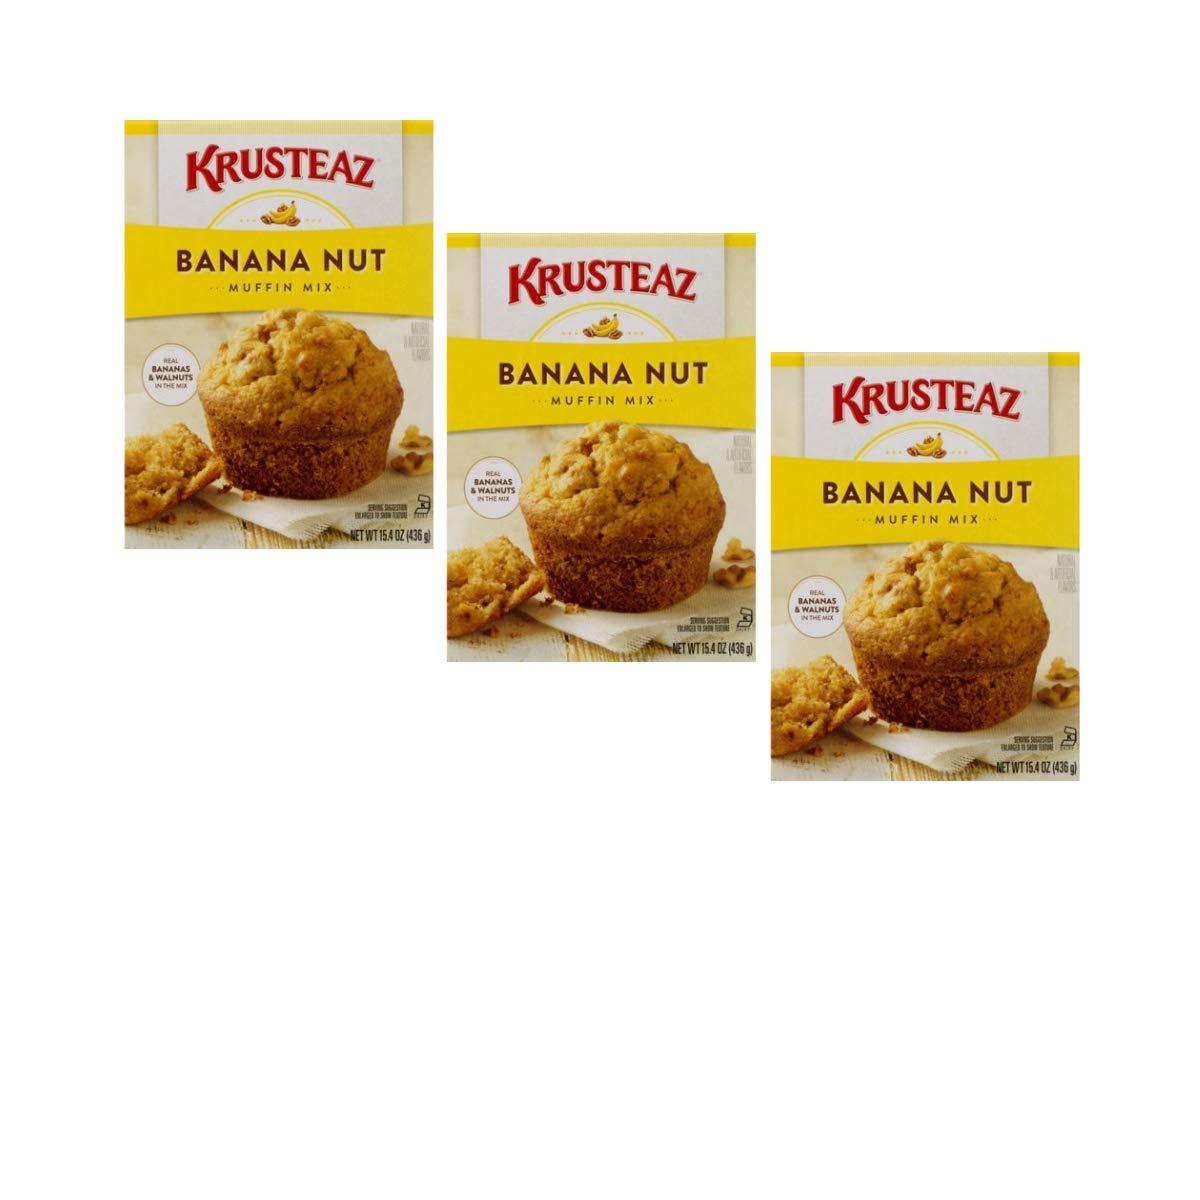 Krusteaz Banana Nut Muffin Mix 3 Large special price pack Dealing full price reduction 15.4-Ounce Boxes